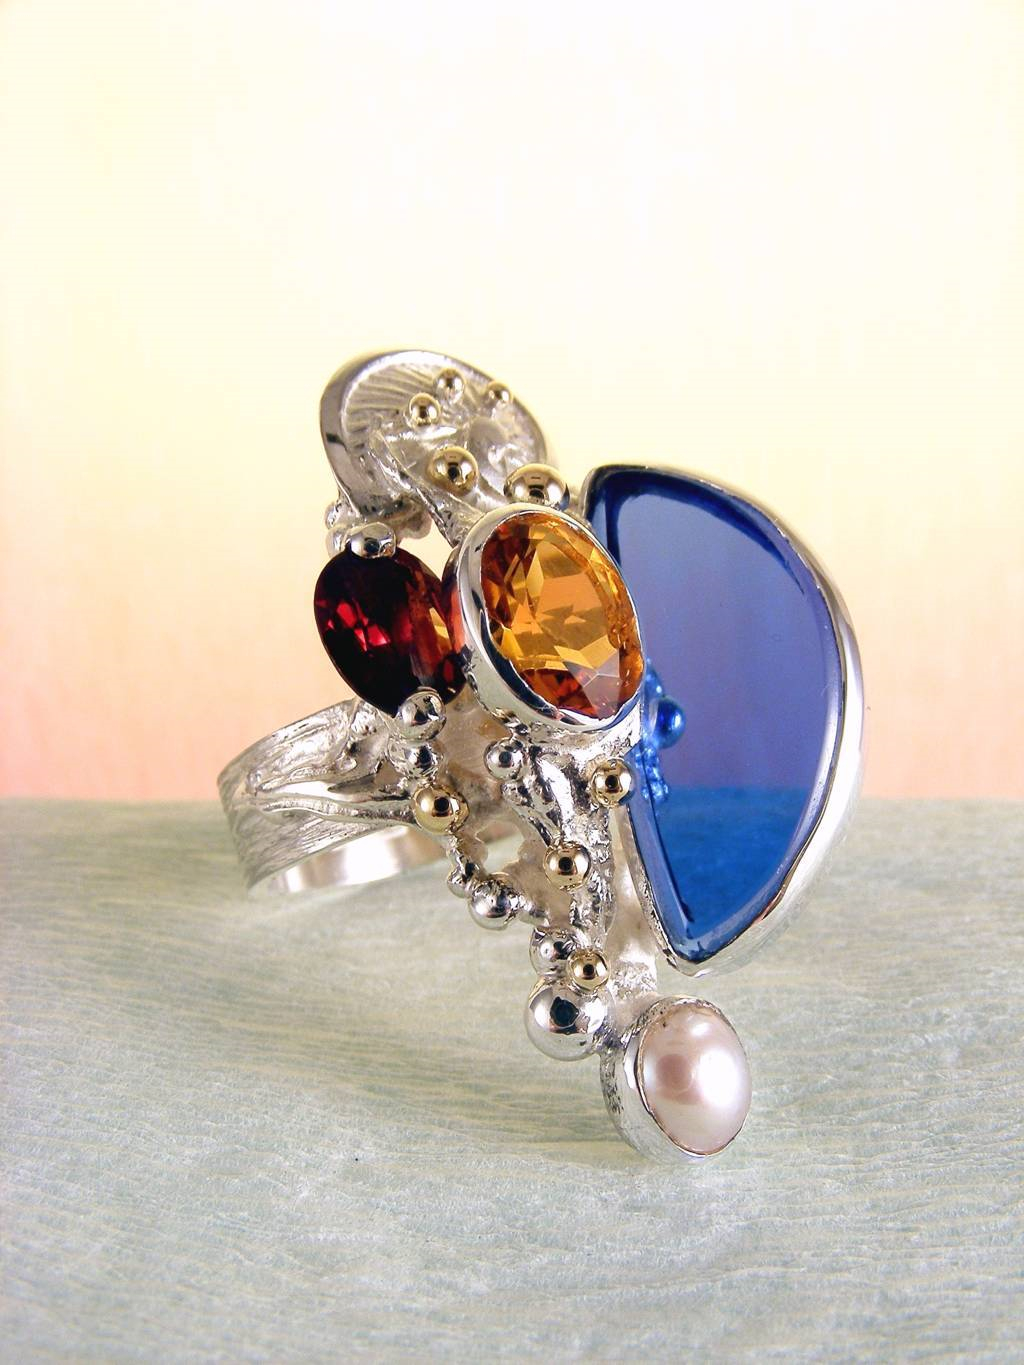 Original Handcrafted, Sterling Silver and Gold, Garnet, Citrine, Glass, Ring with Citrine and Garnet #3624